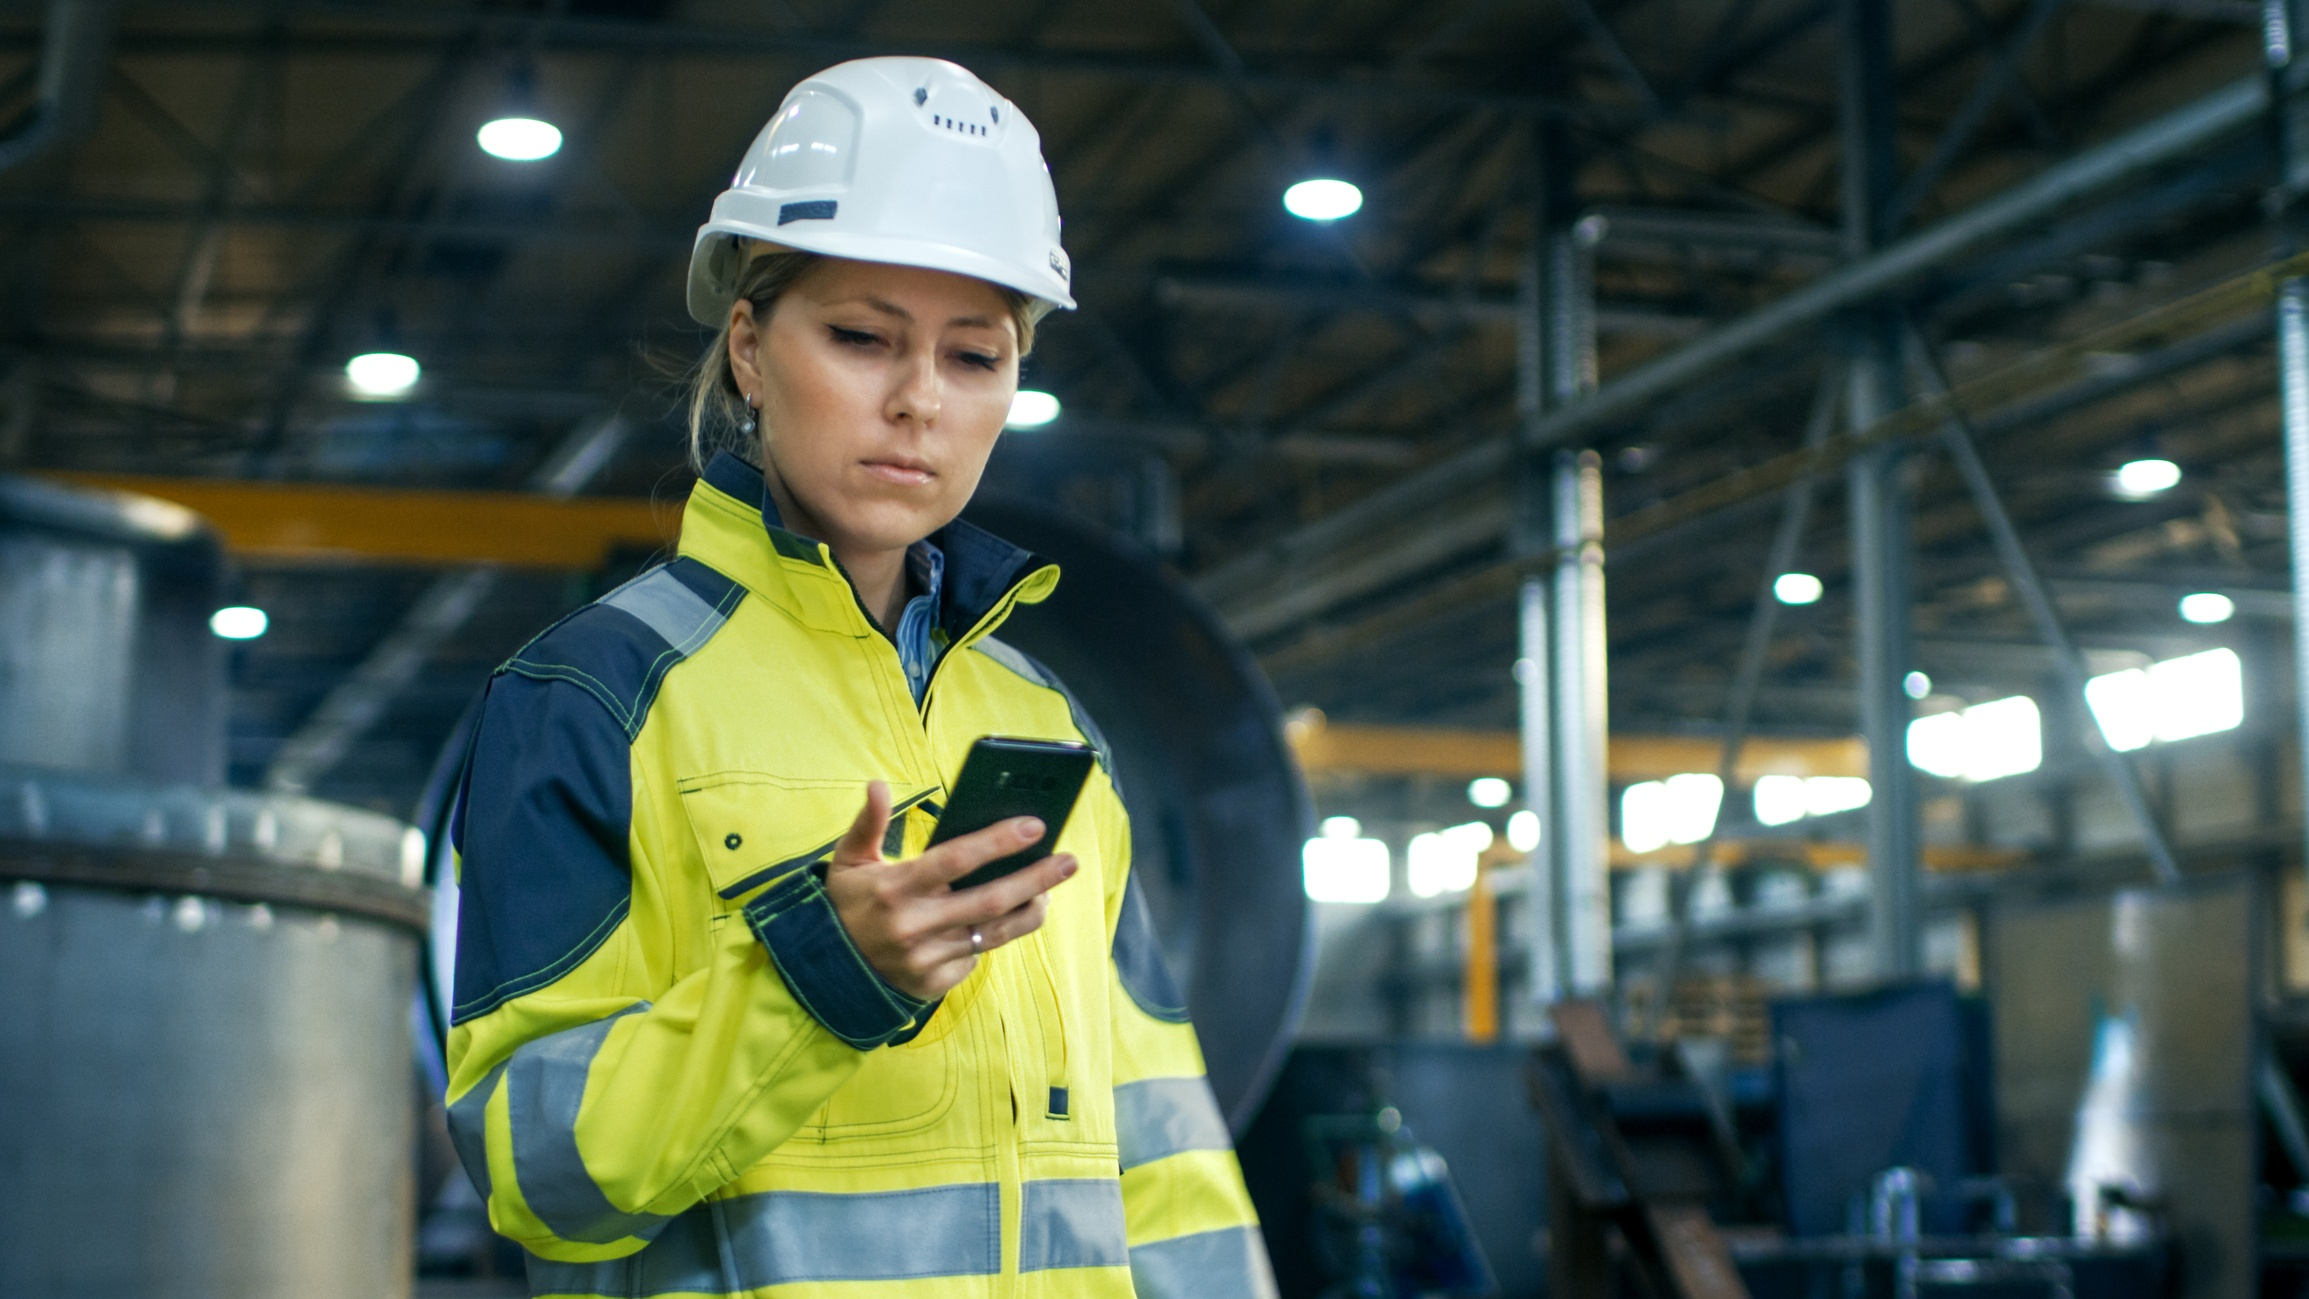 Mobile Apps for Firstline Workers — the Key To Digital Transformation